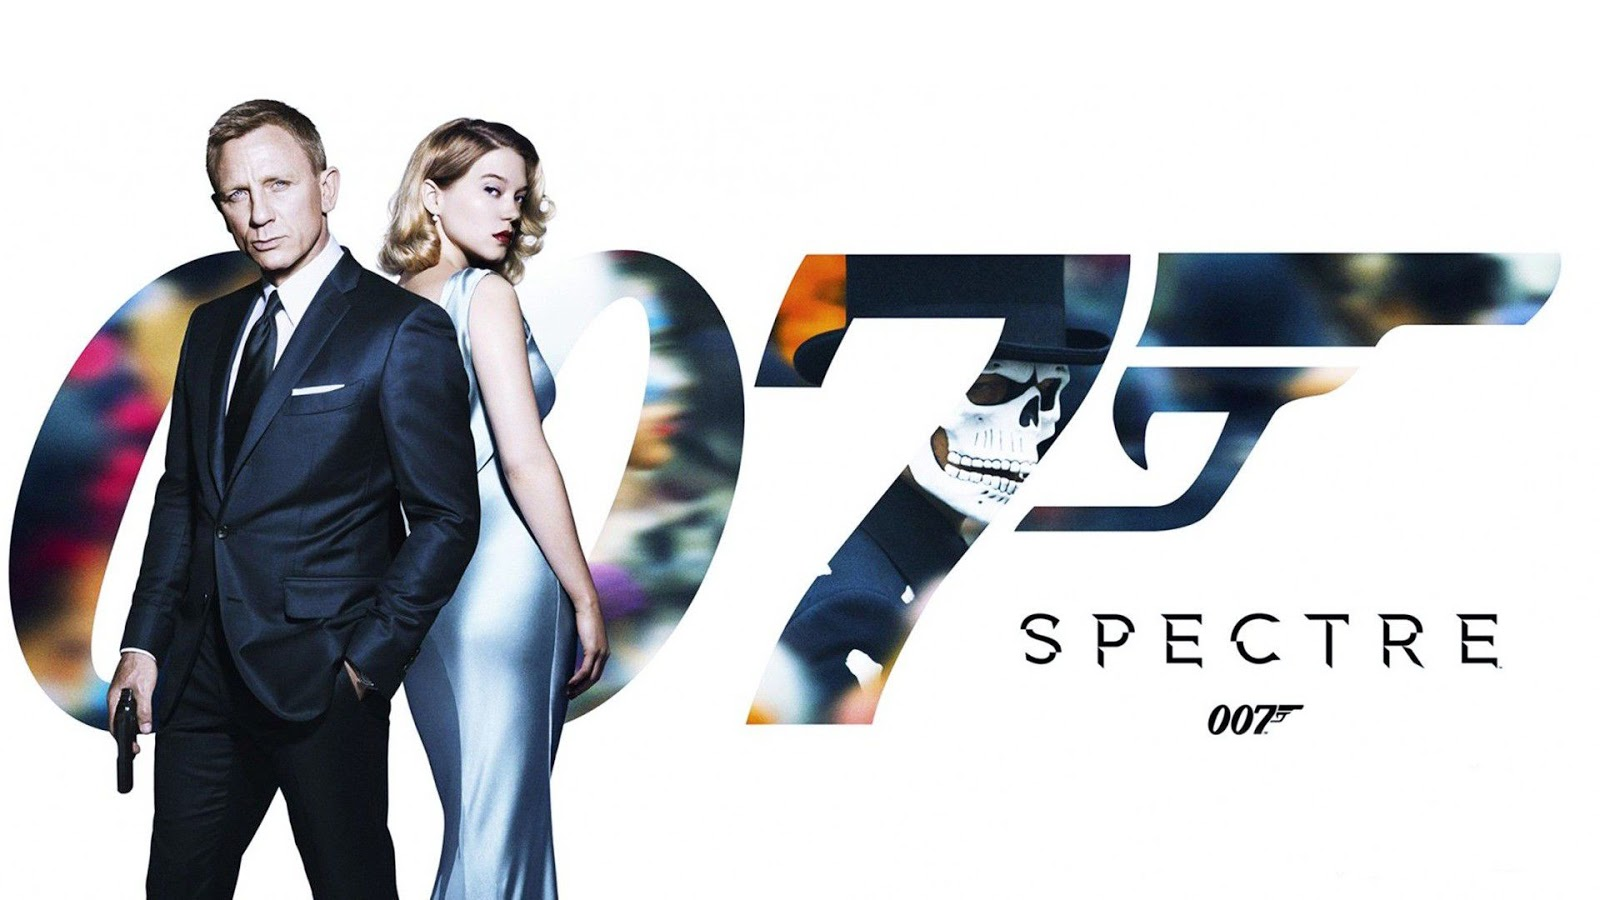 007 Spectre Hd Wallpaper Awesome Wallpapers 1600x900